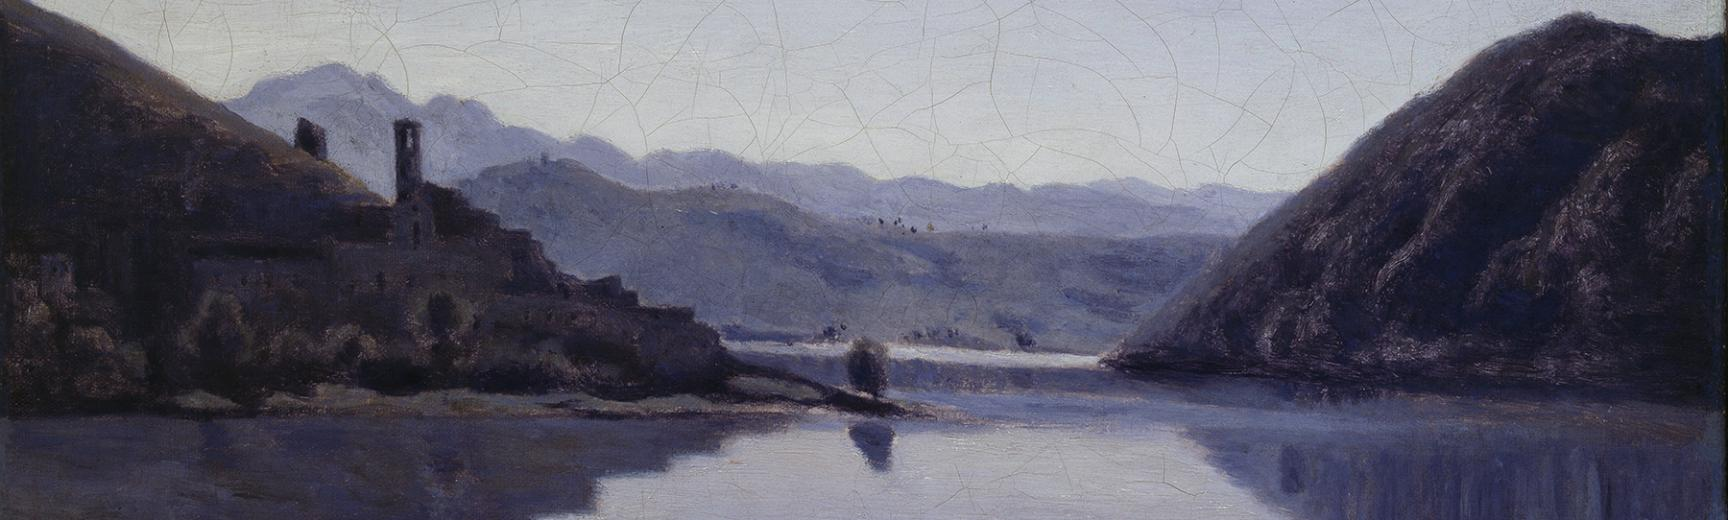 Lago di Piediluco, Umbria (detail) by Jean Baptiste-Camille Corot (1796-1875)